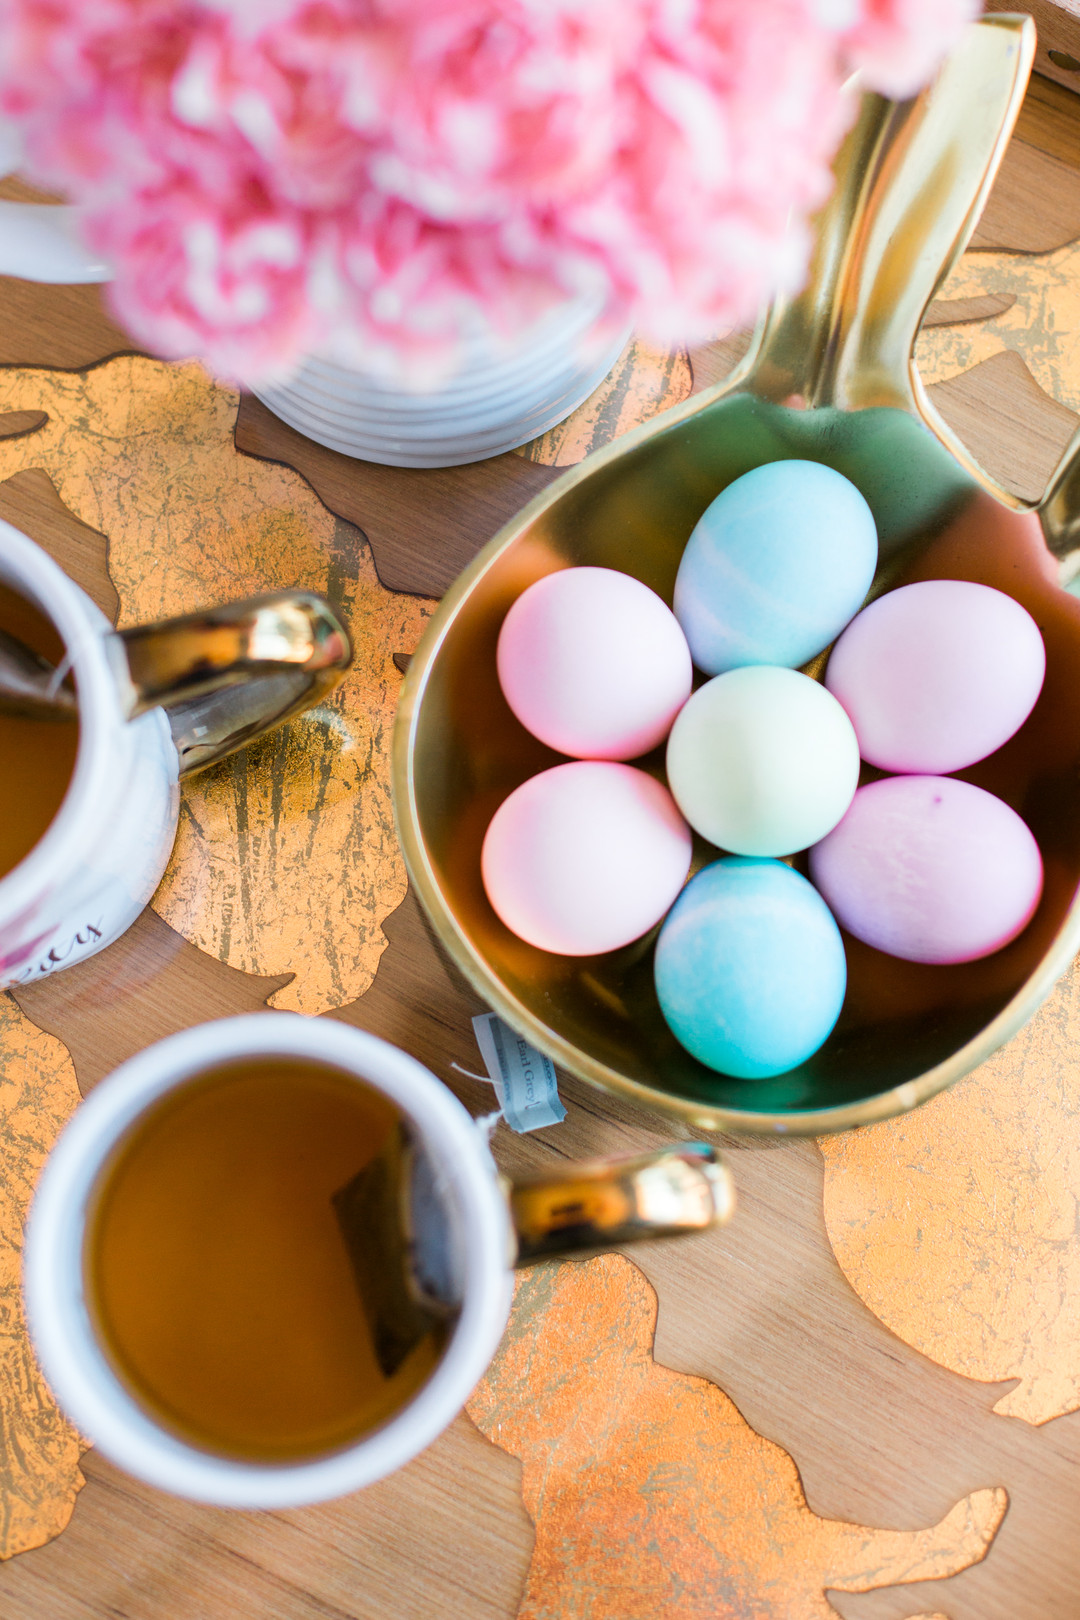 Staal_KristinaStaalPhotography_KristinaStaalPhotographyEasterTablescape201638_big Easy Entertaining: Easter Brunch Inspiration for Two